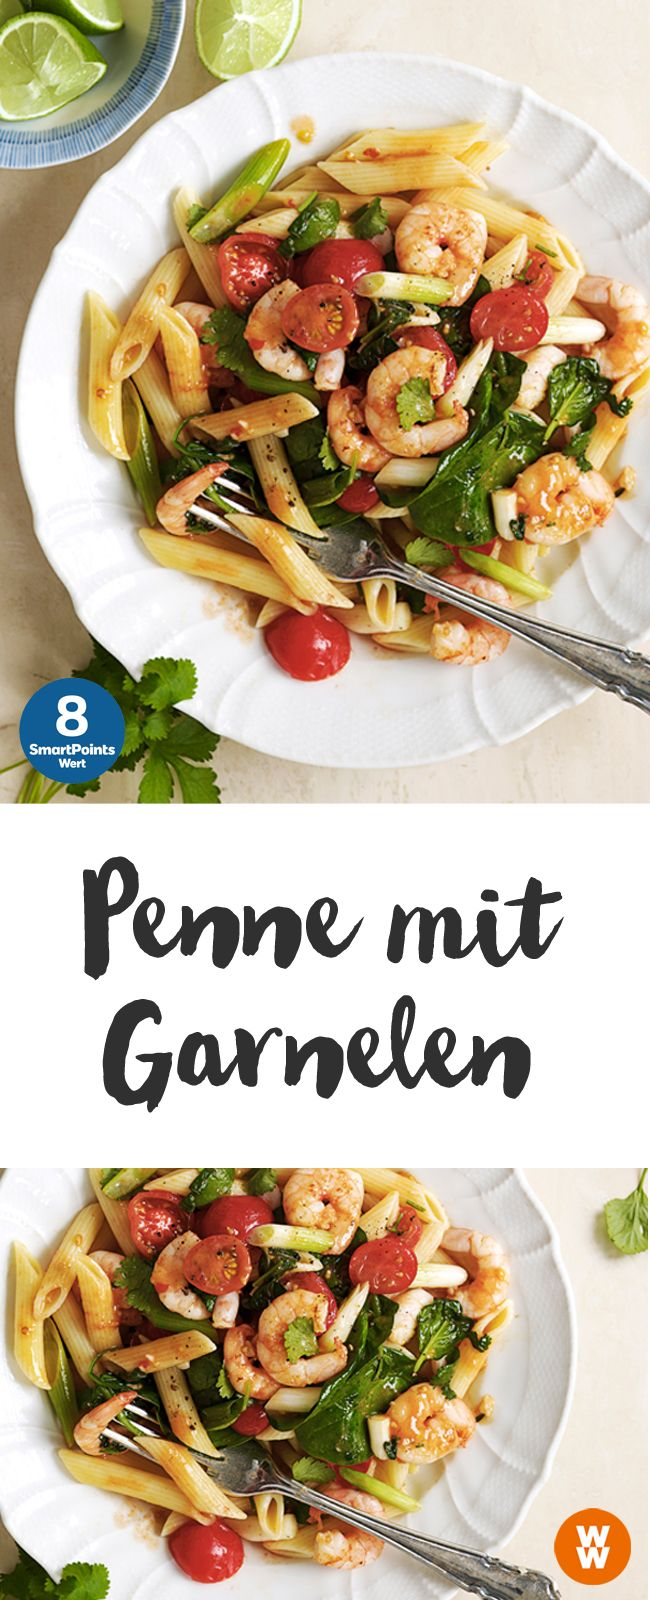 Penne mit Garnelen | 4 Portionen, 8 SmartPoints/Portion, Weight Watchers, Nudeln, fertig in 20 min.